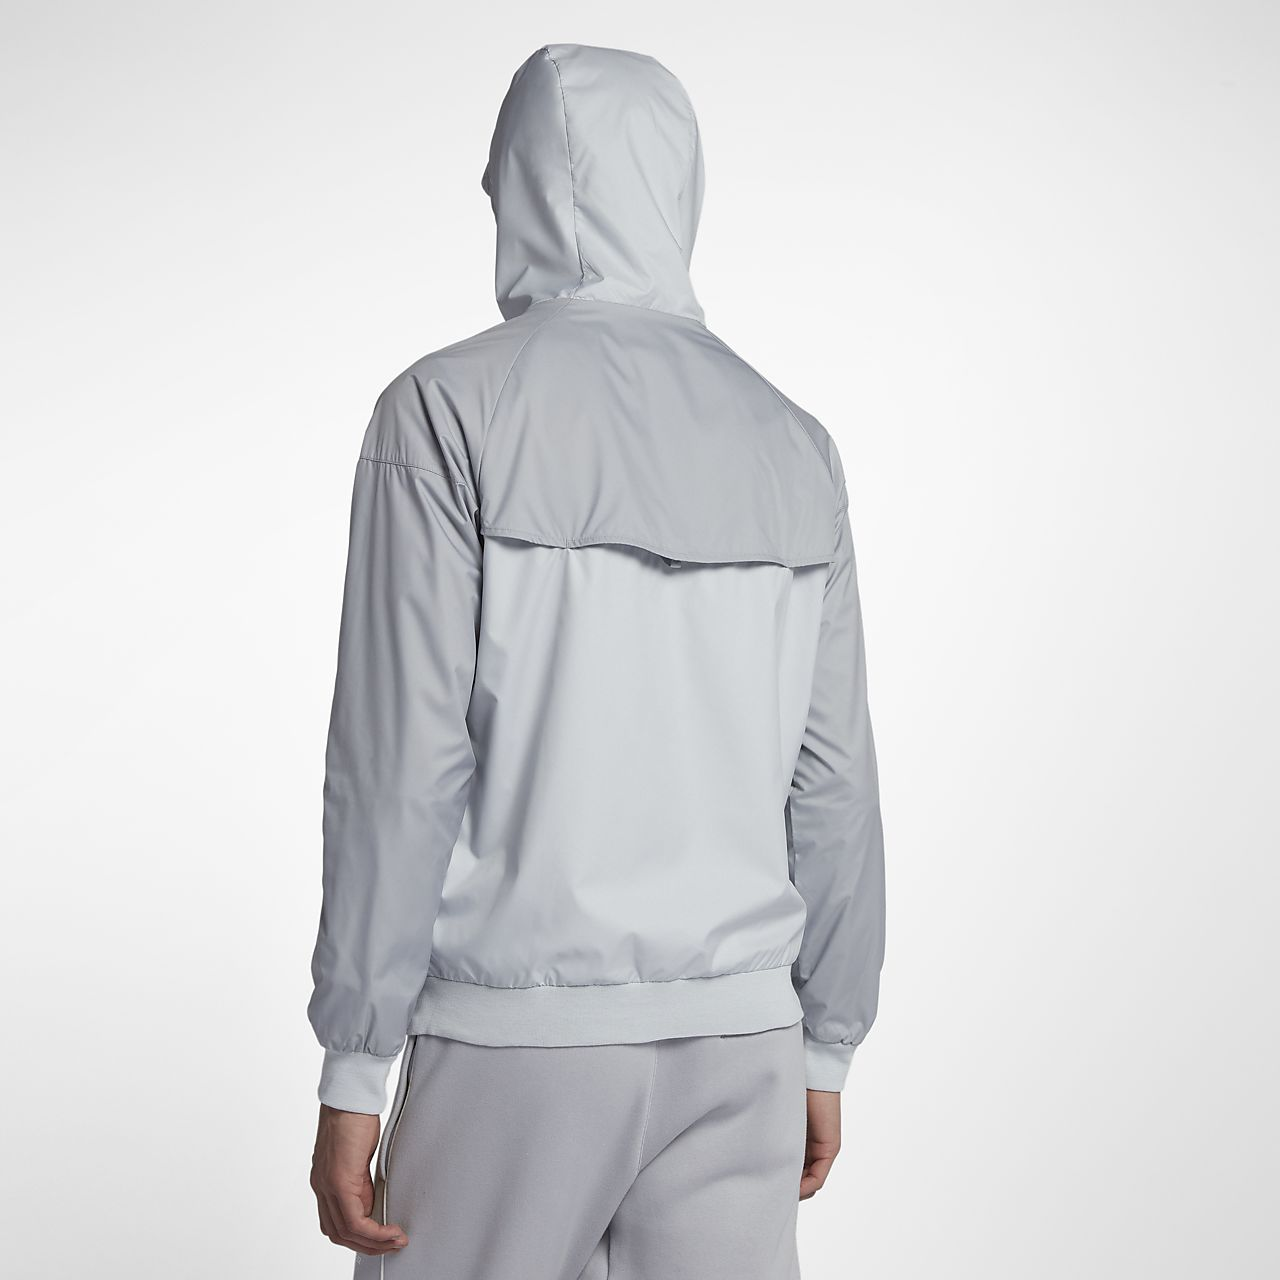 44807e2f367e Low Resolution Nike Sportswear Windrunner Men s Jacket Nike Sportswear  Windrunner Men s Jacket